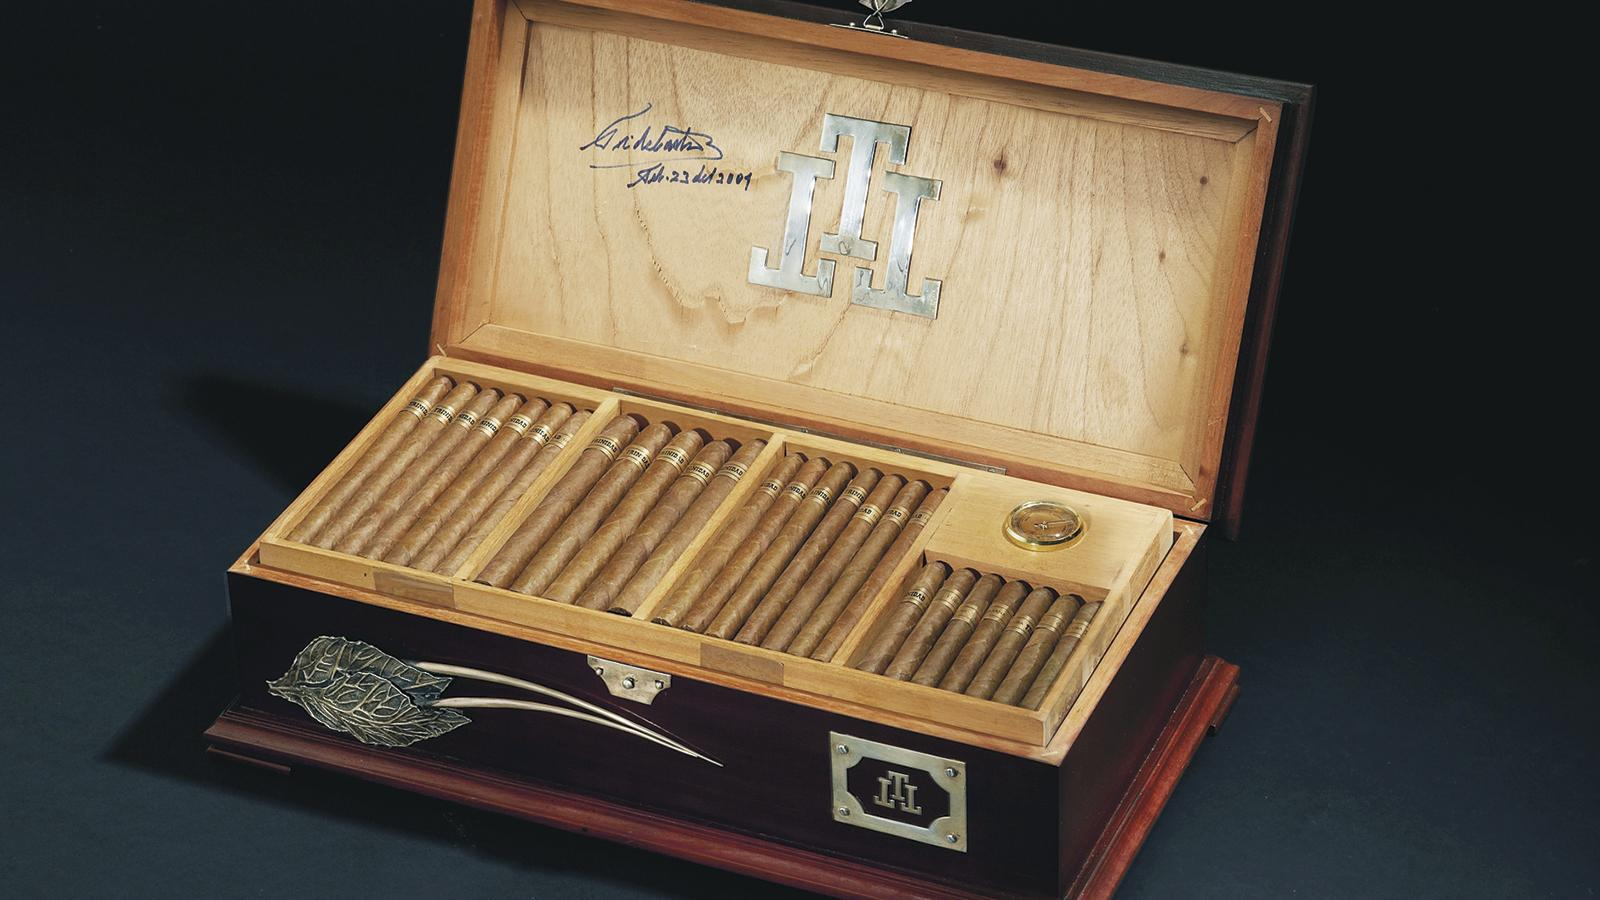 Cigar auctions offer the chance to acquire aged rarities. A unique Trinidad humidor signed by Fidel Castro sold for $172,000.